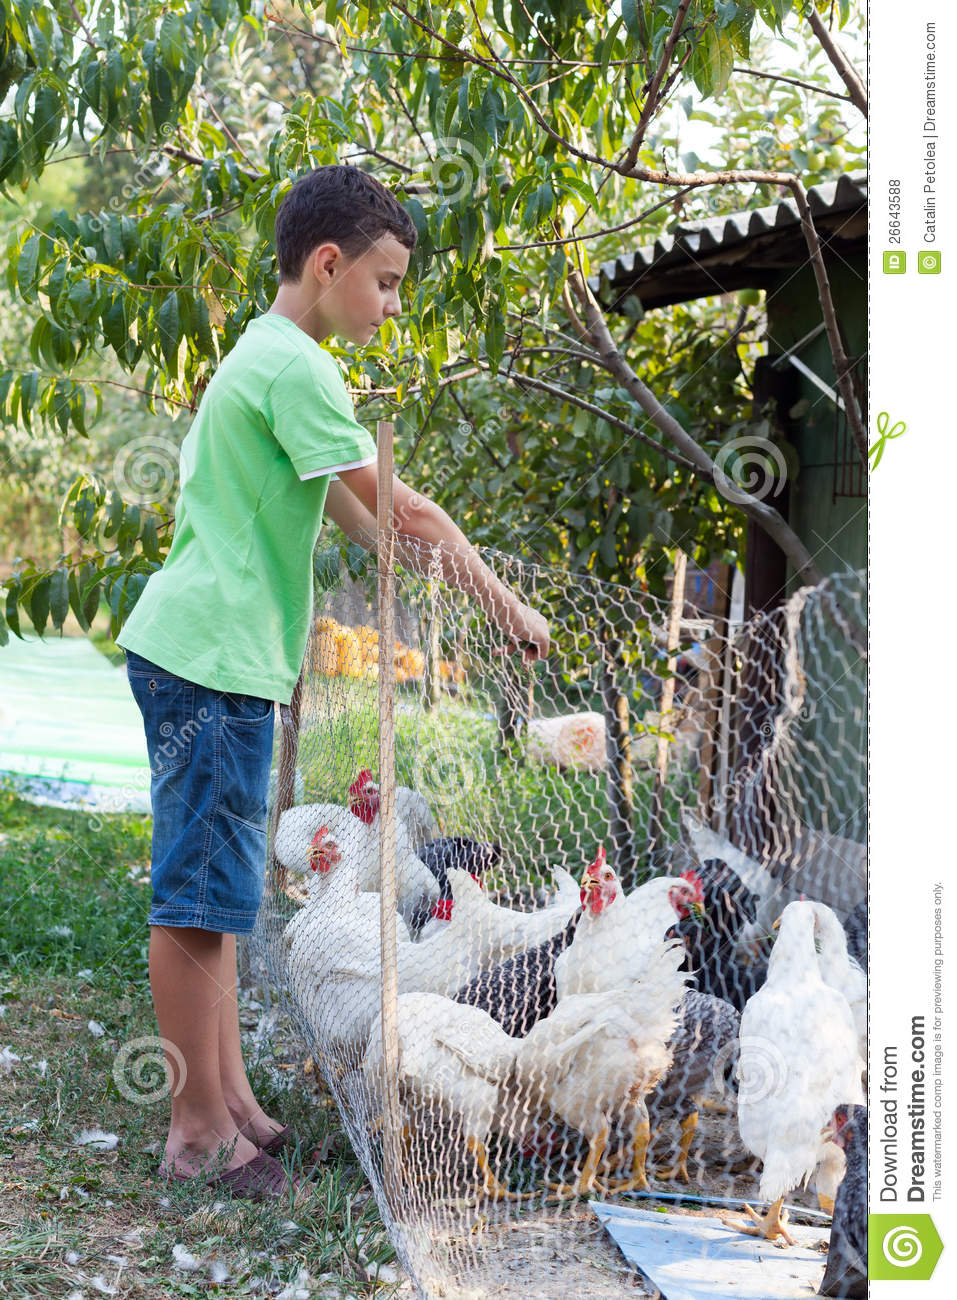 Feeding Chickens Natural Food